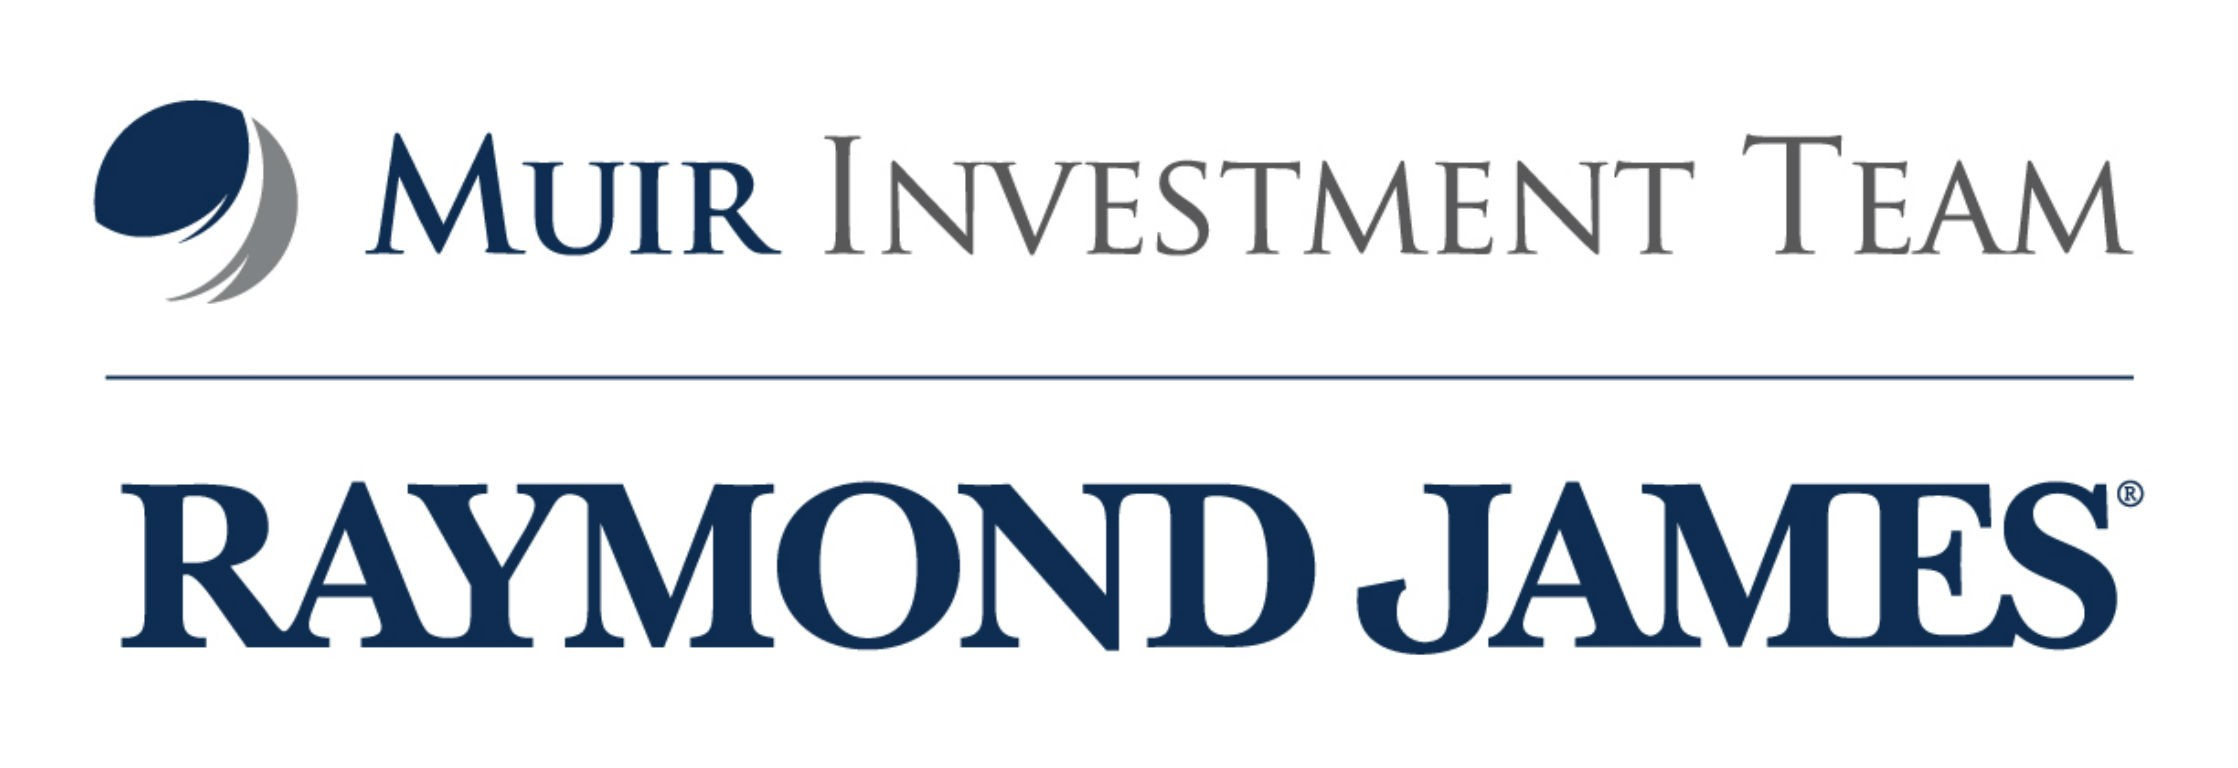 Raymond james investment services linkedin sign 80ccc investment clubs